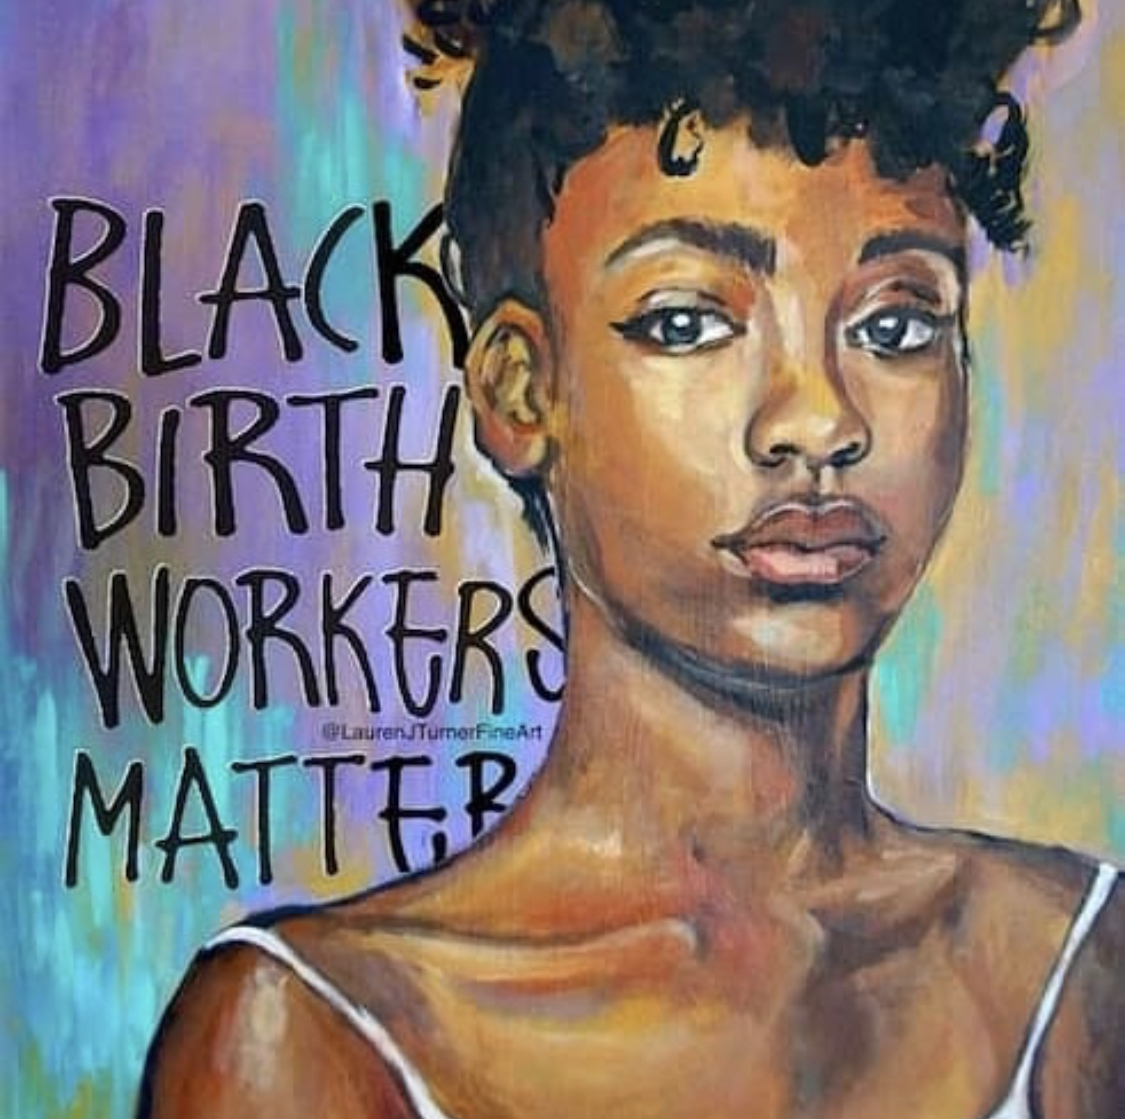 Art by Lauren J. Turner ( Ren the Doula )